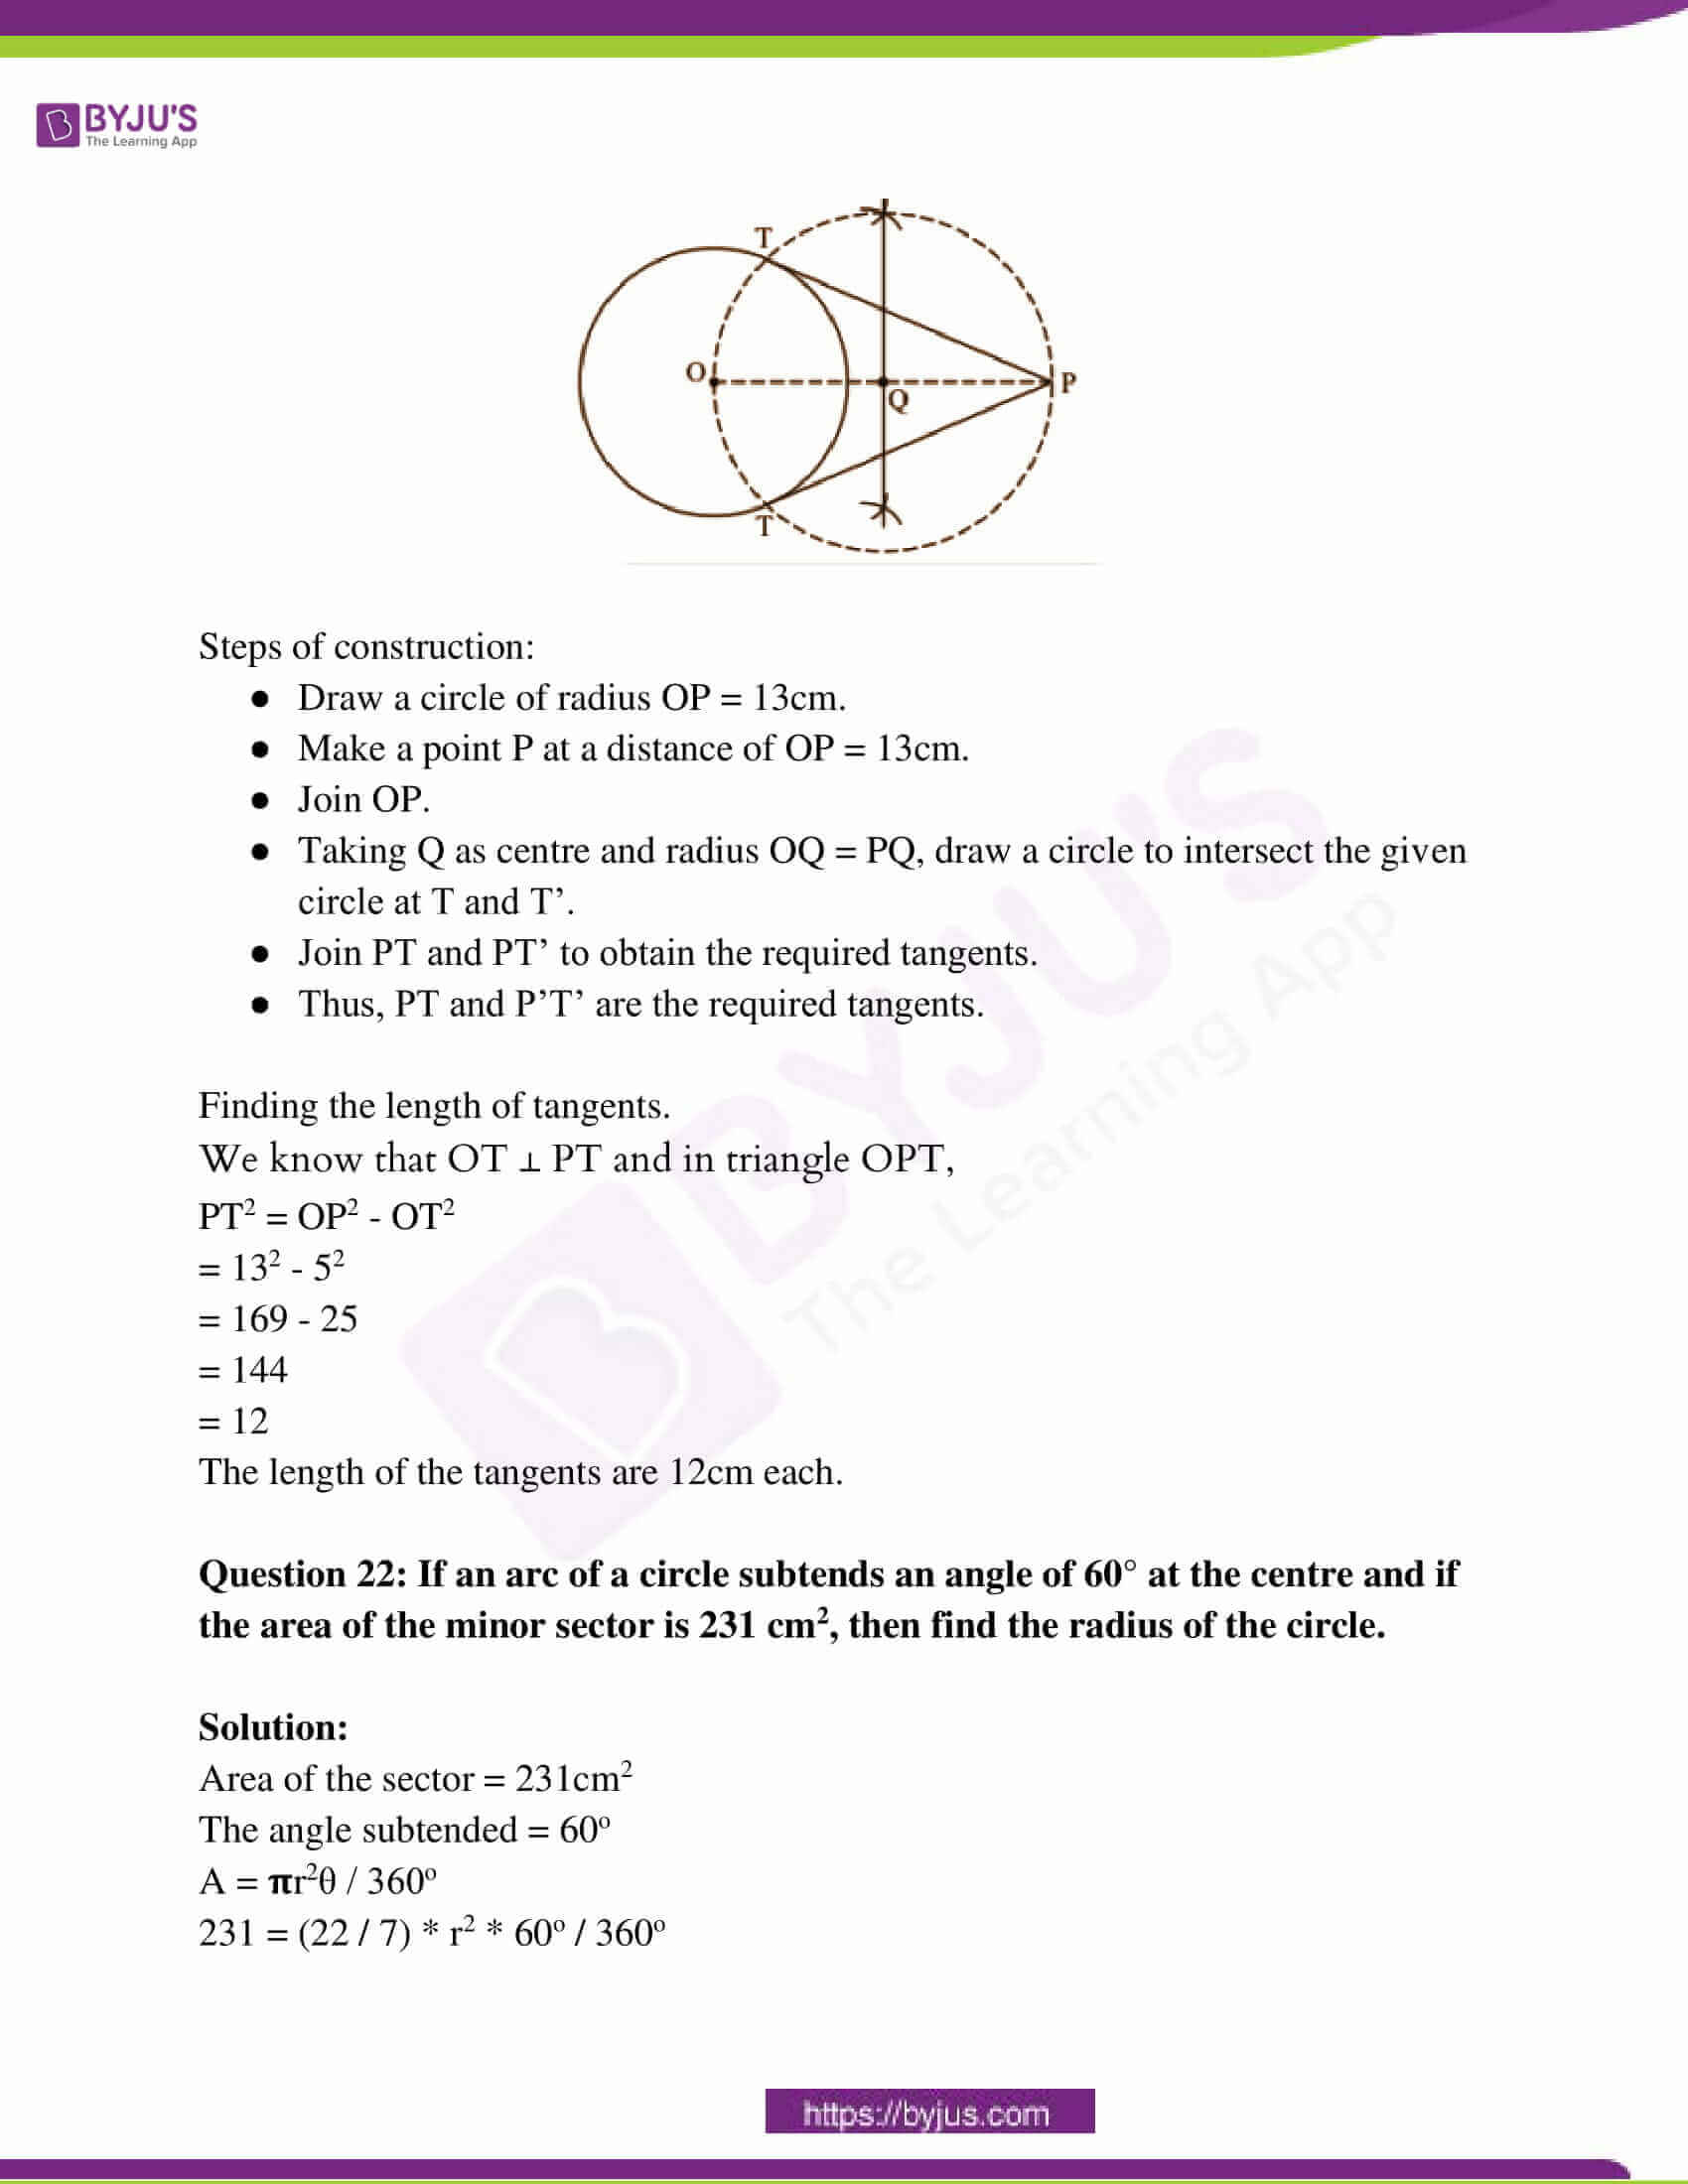 rajasthan board class 10 examination question paper sol march 2017 12